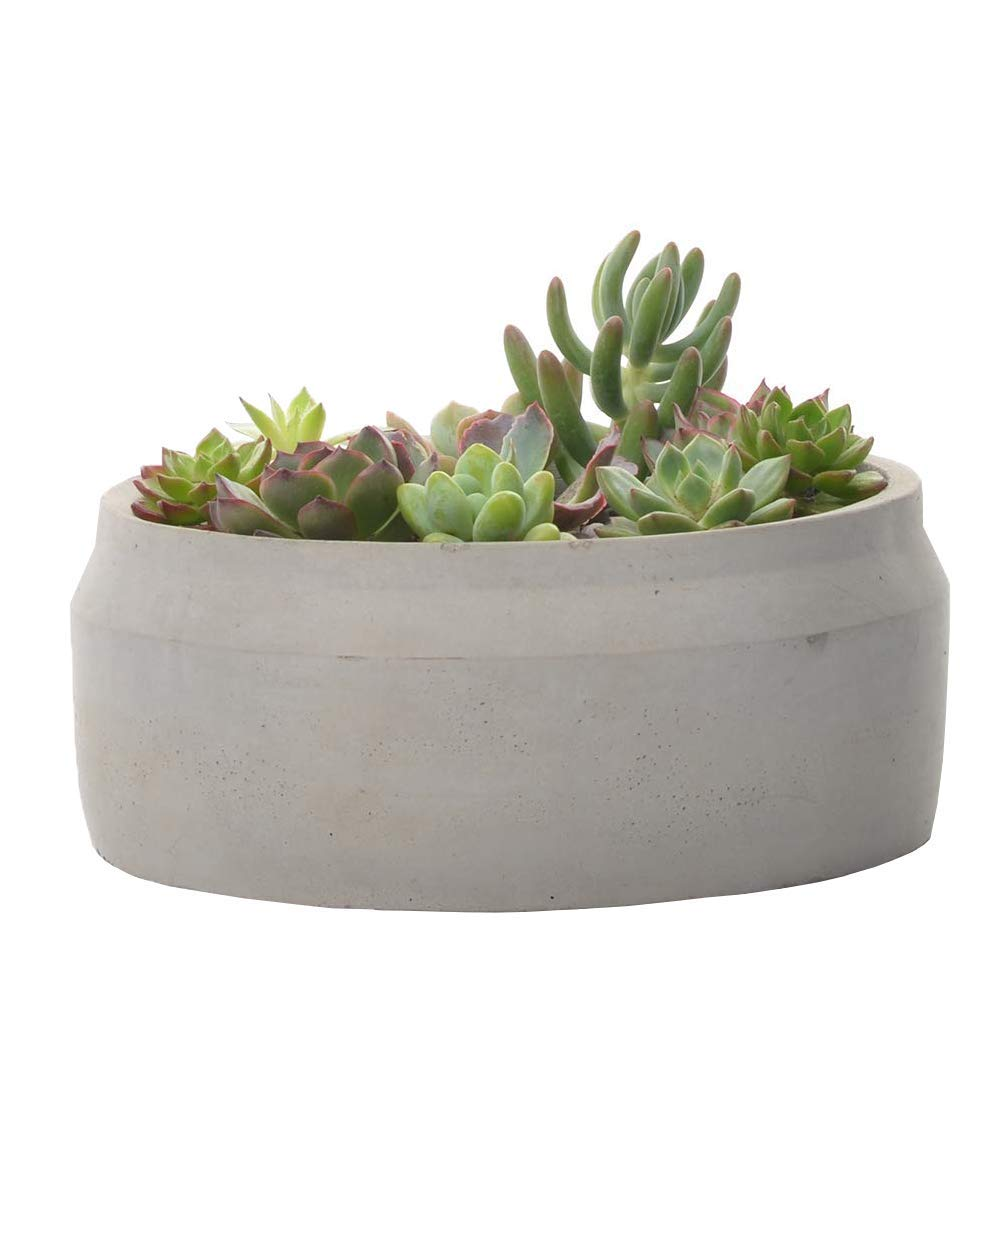 Cement Succulent Planter Pot Indoor Outdoor Decorative with Drainage Round Ceramic Rustic Flower Pots for Home Garden 7 , Grey